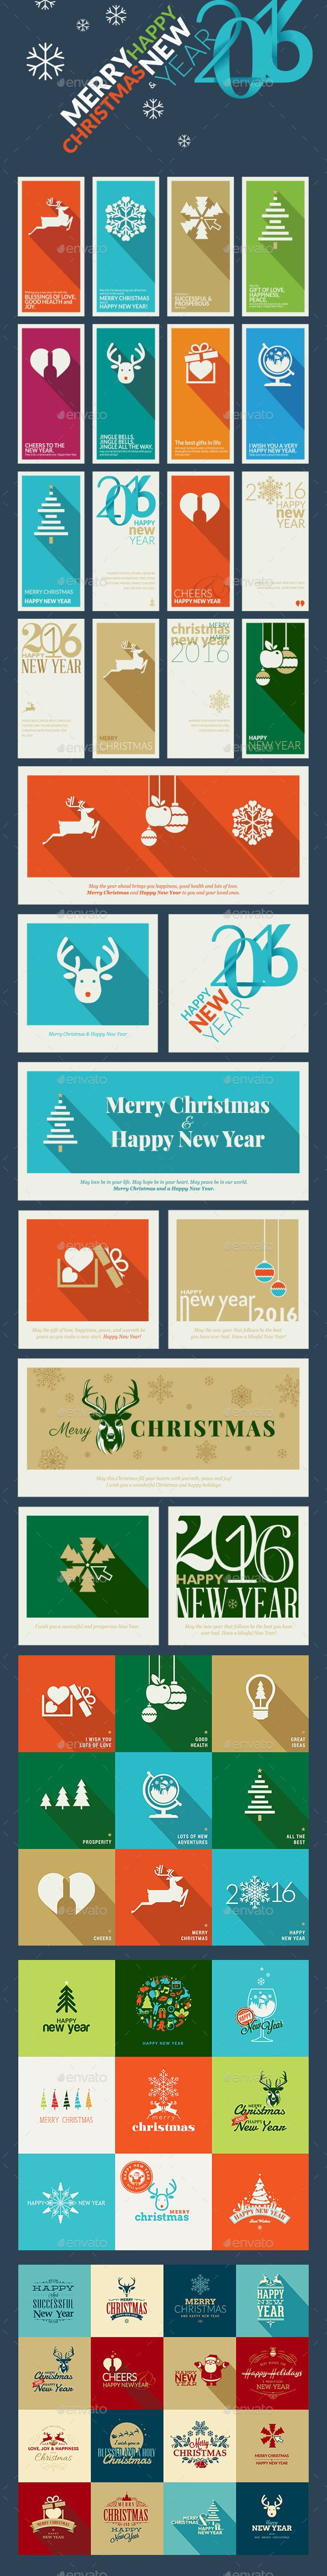 Flat Design Christmas and New Year Greeting Cards Template Vector EPS, AI, PSD #design Download: http://graphicriver.net/item/flat-design-christmas-and-new-year-greeting-cards/13710269?ref=ksioks